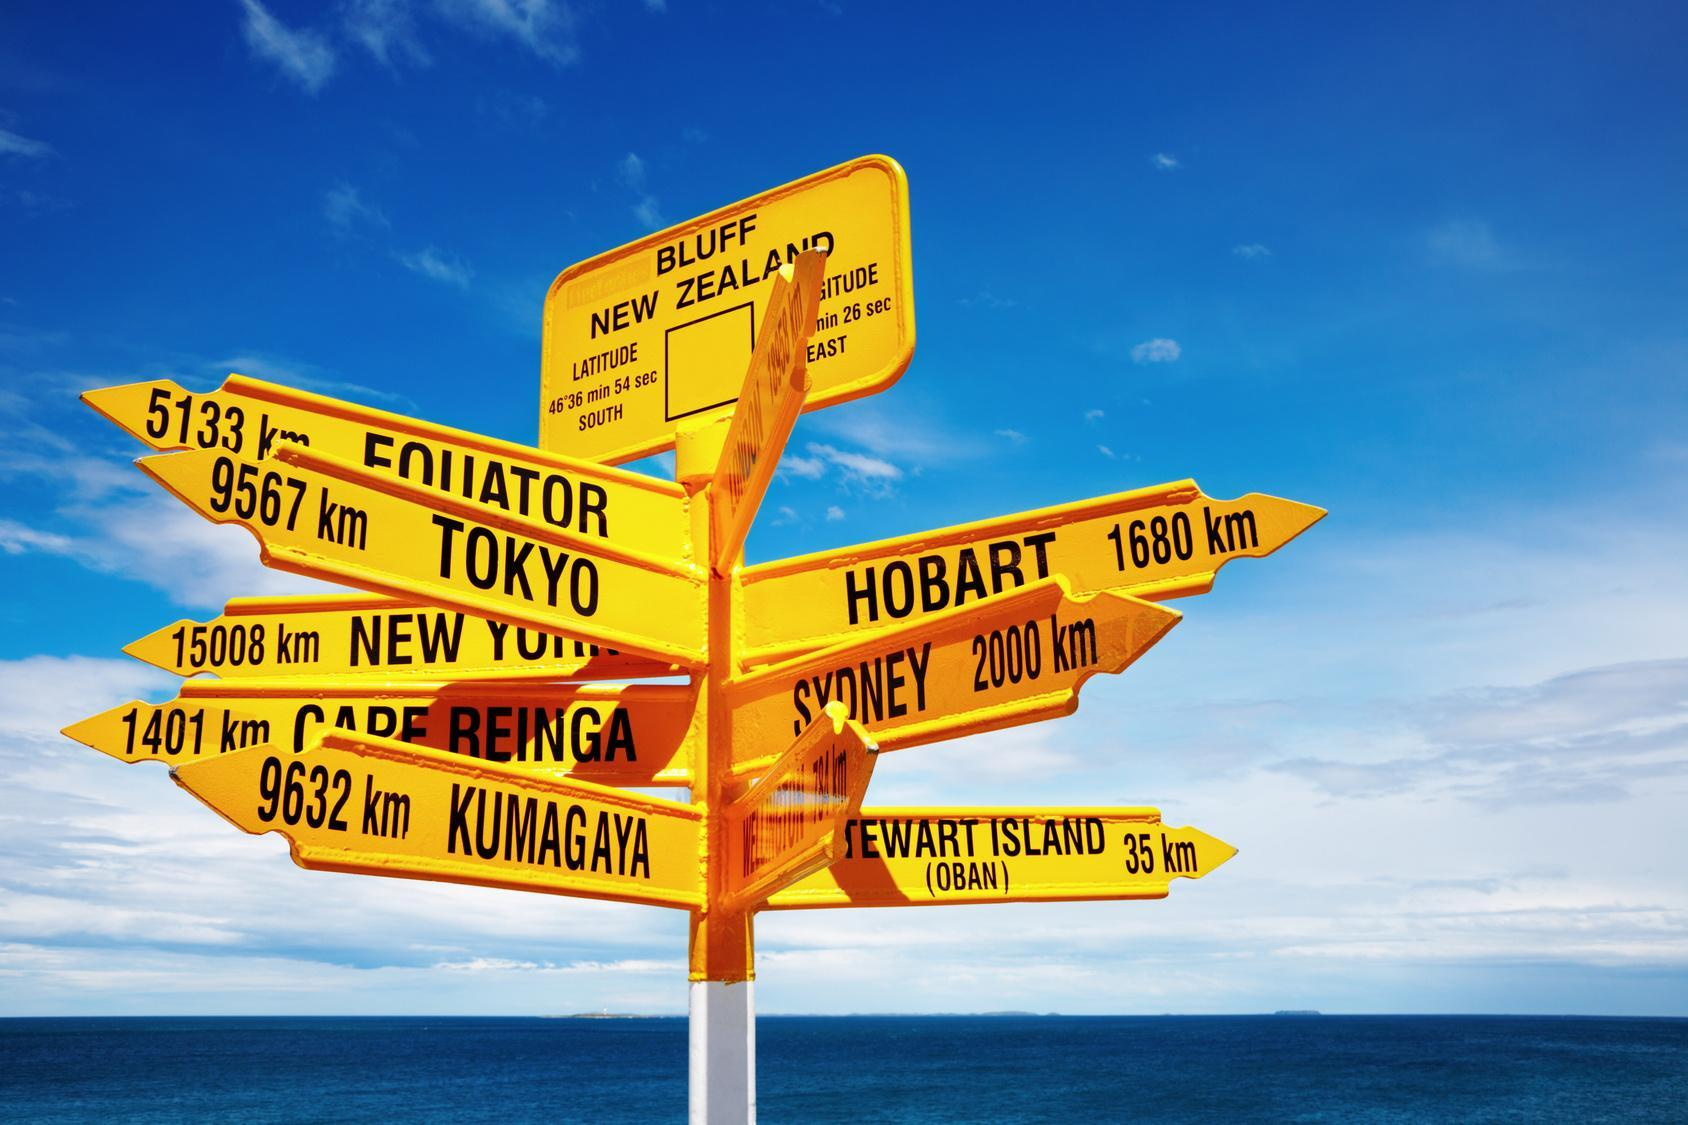 Which one of these destinations would you prefer to go to